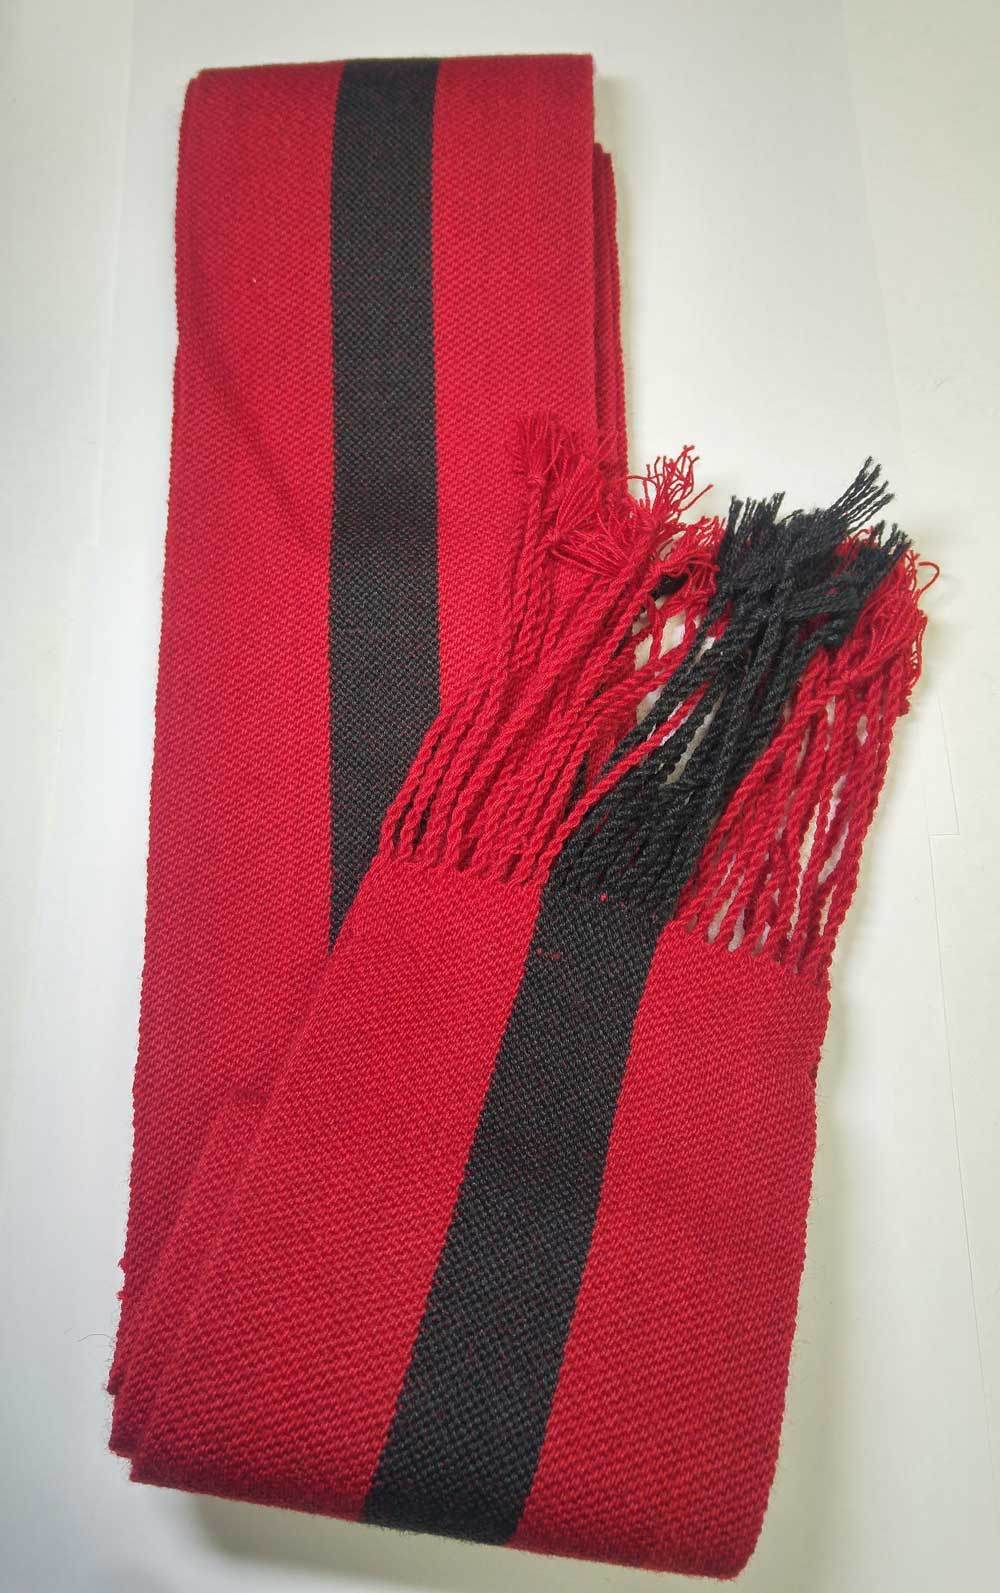 Sash: Sgt., Red with Black Stripe, 18/19C